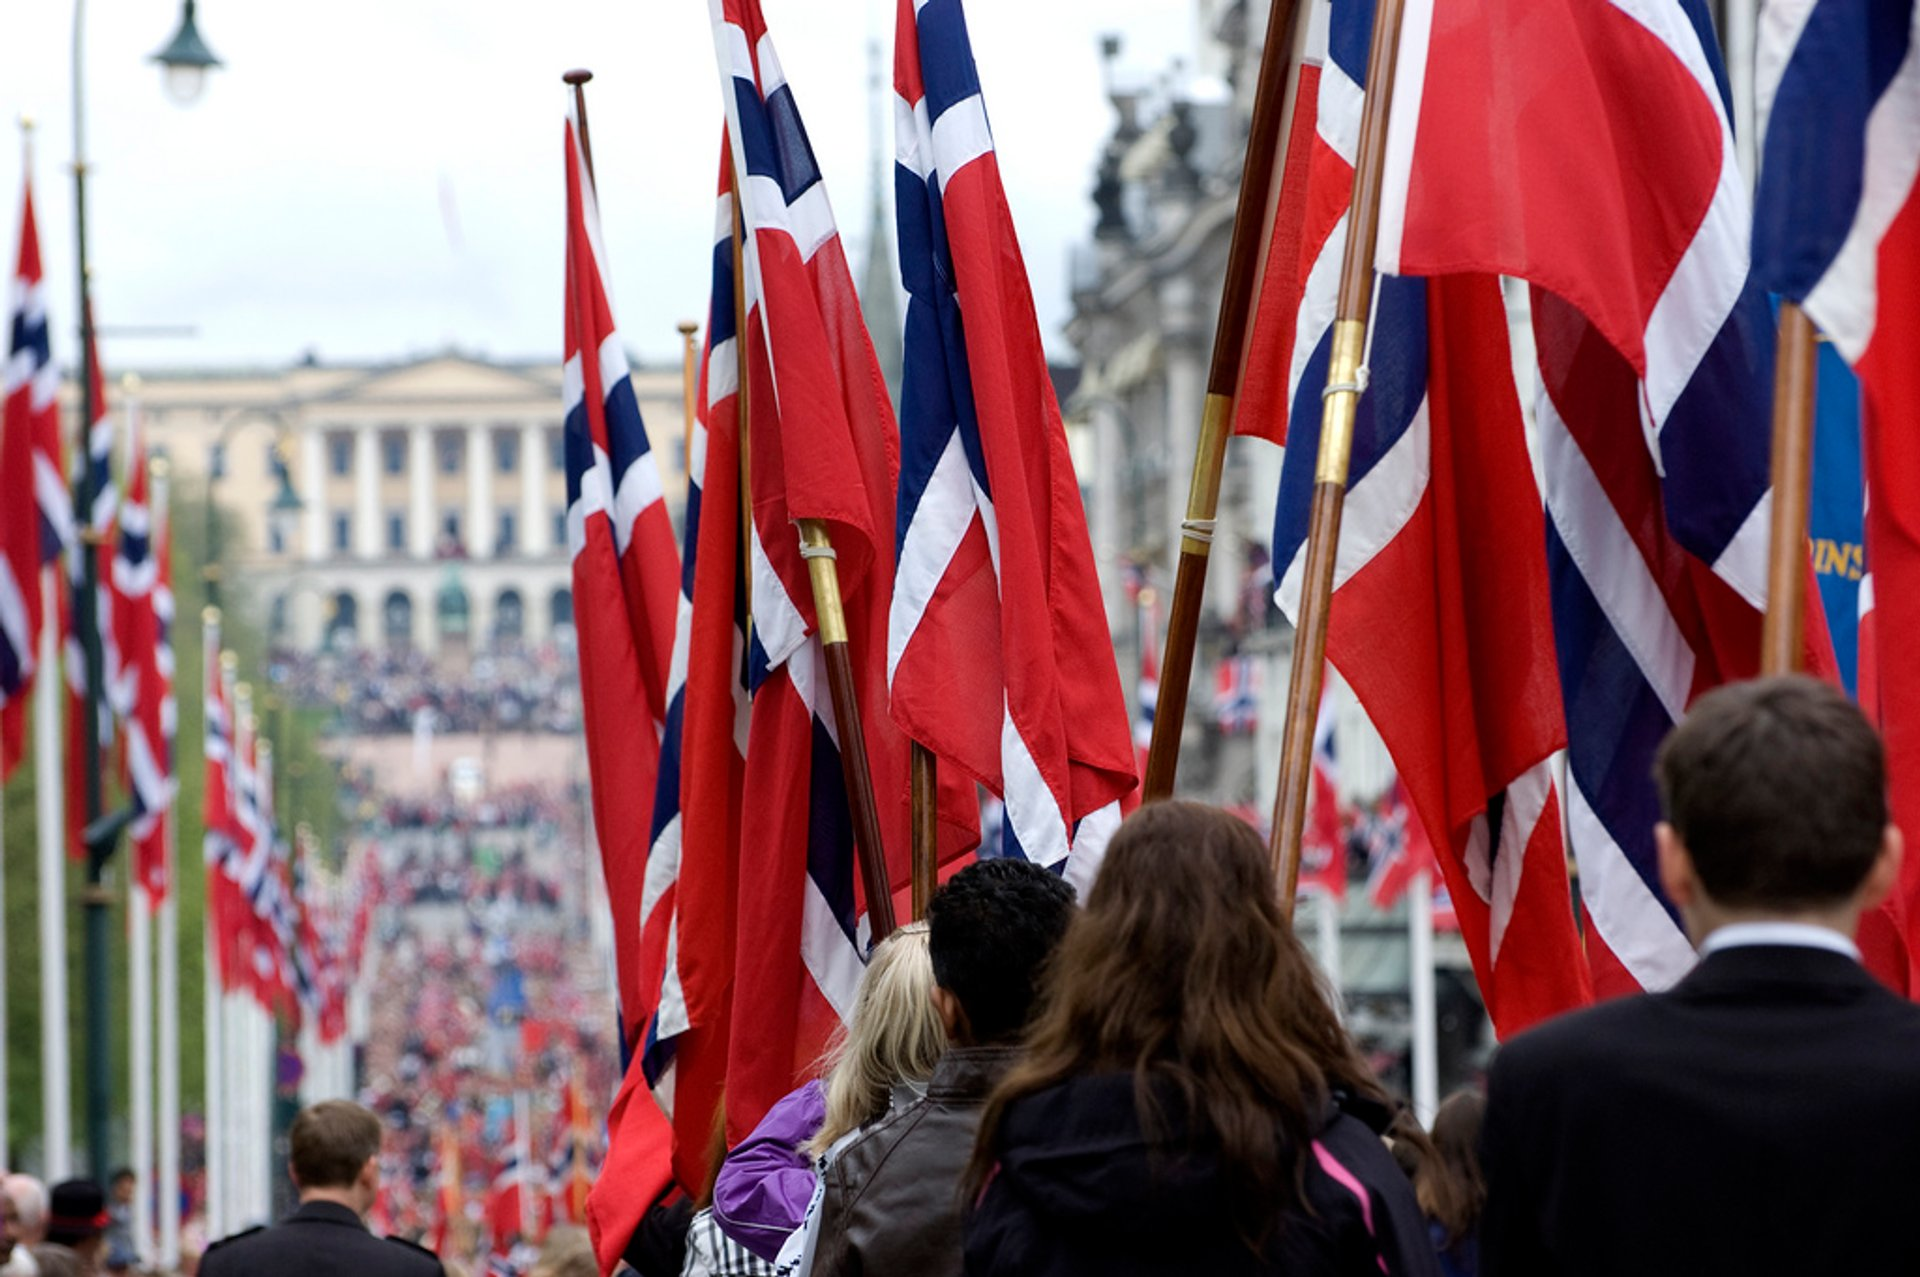 Norway's National Day in Norway 2020 - Best Time